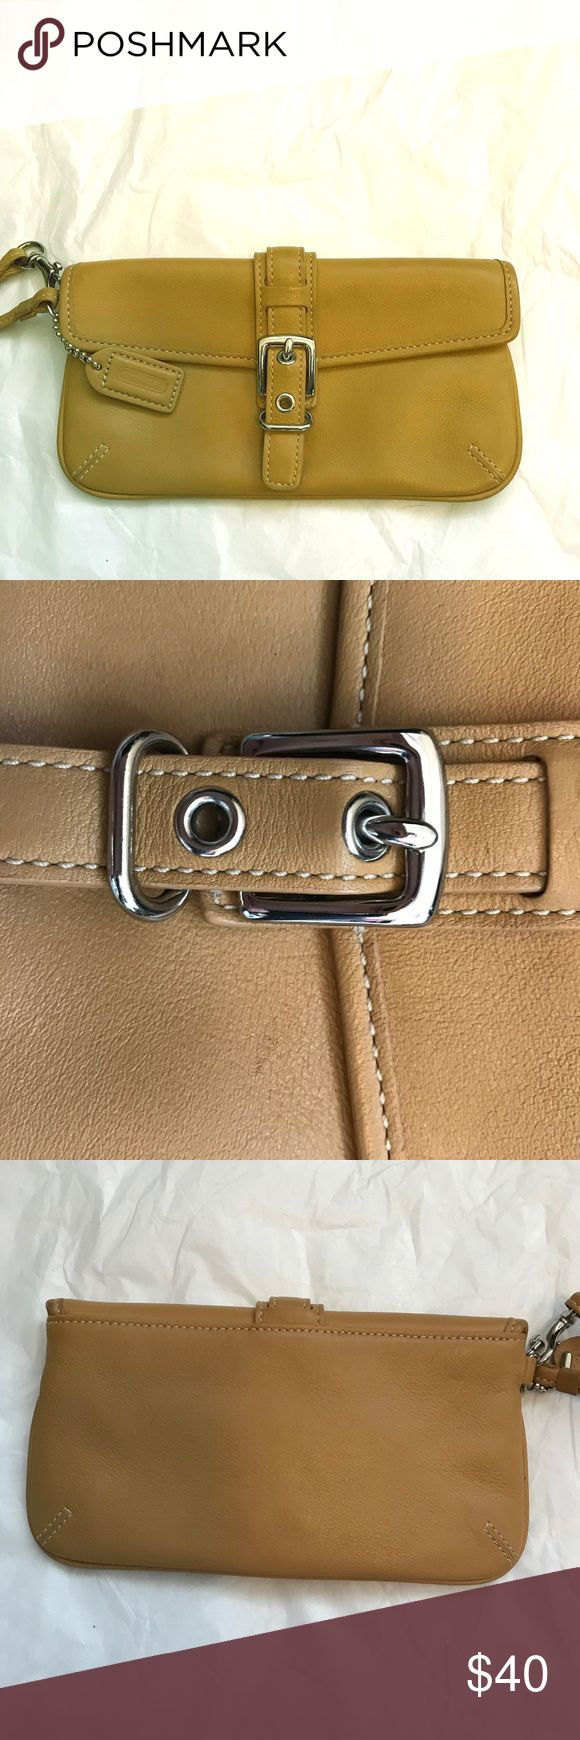 Coach Women's Wristlet Tan Coach Leather Wristlet - Excellent Condition Used only a handful of times Coach Bags Clutches & Wristlets